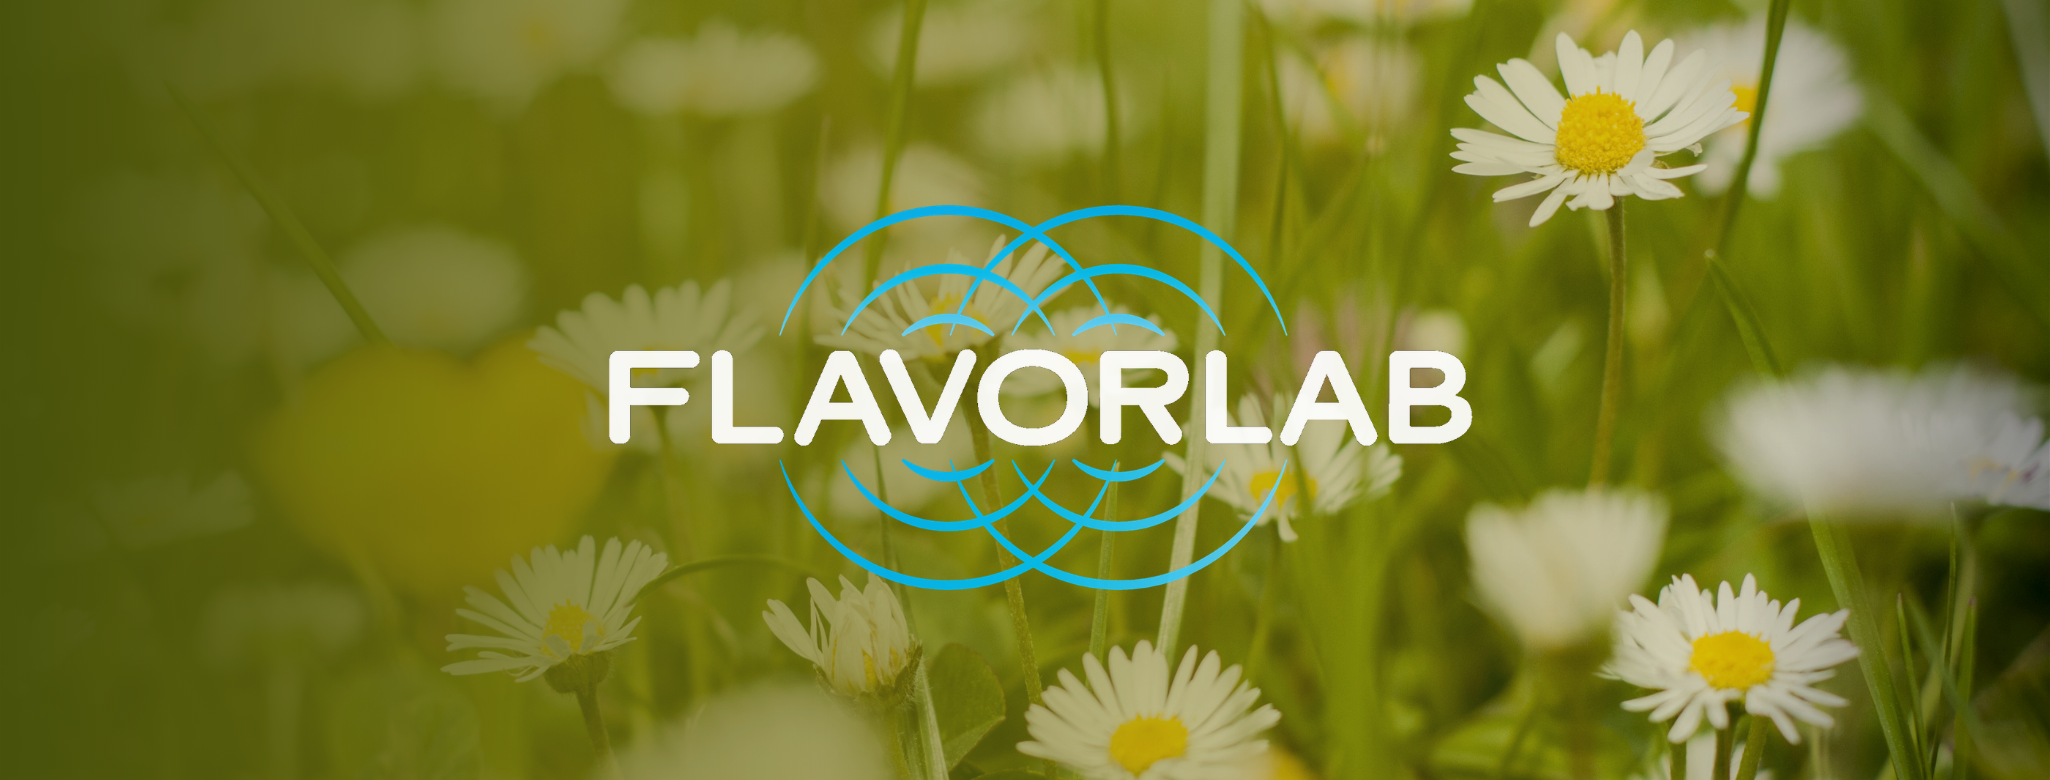 Banner for the 2021 May Tastes playlist - the Flavorlab logo overlaid on a picture of white daisies in a field overlaid with an olive green gradient.